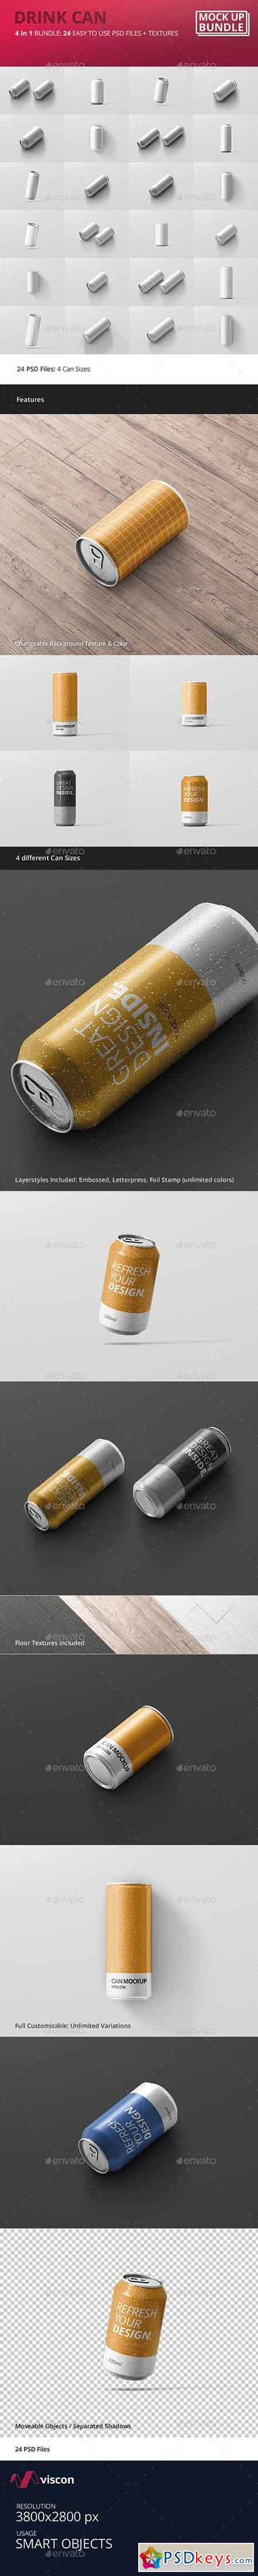 Drink Can Mockup Bundle 19499155